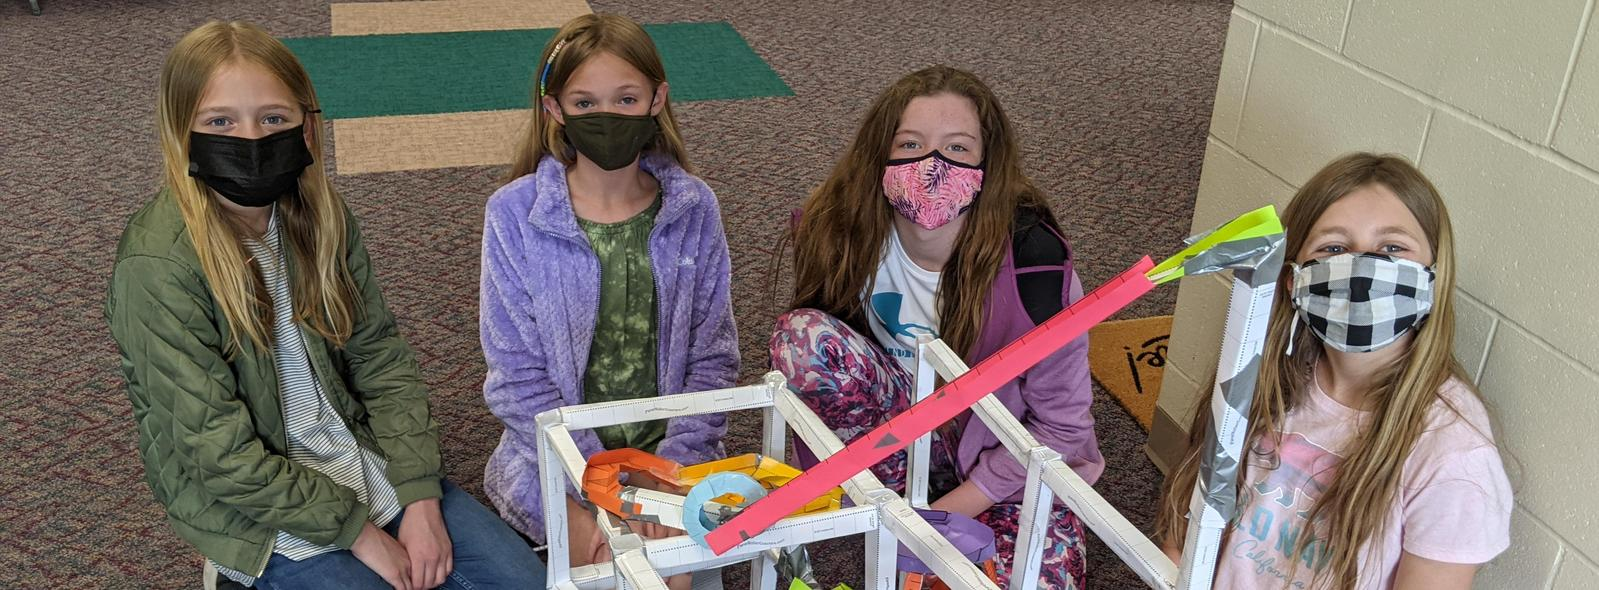 Students by their roller coaster creation